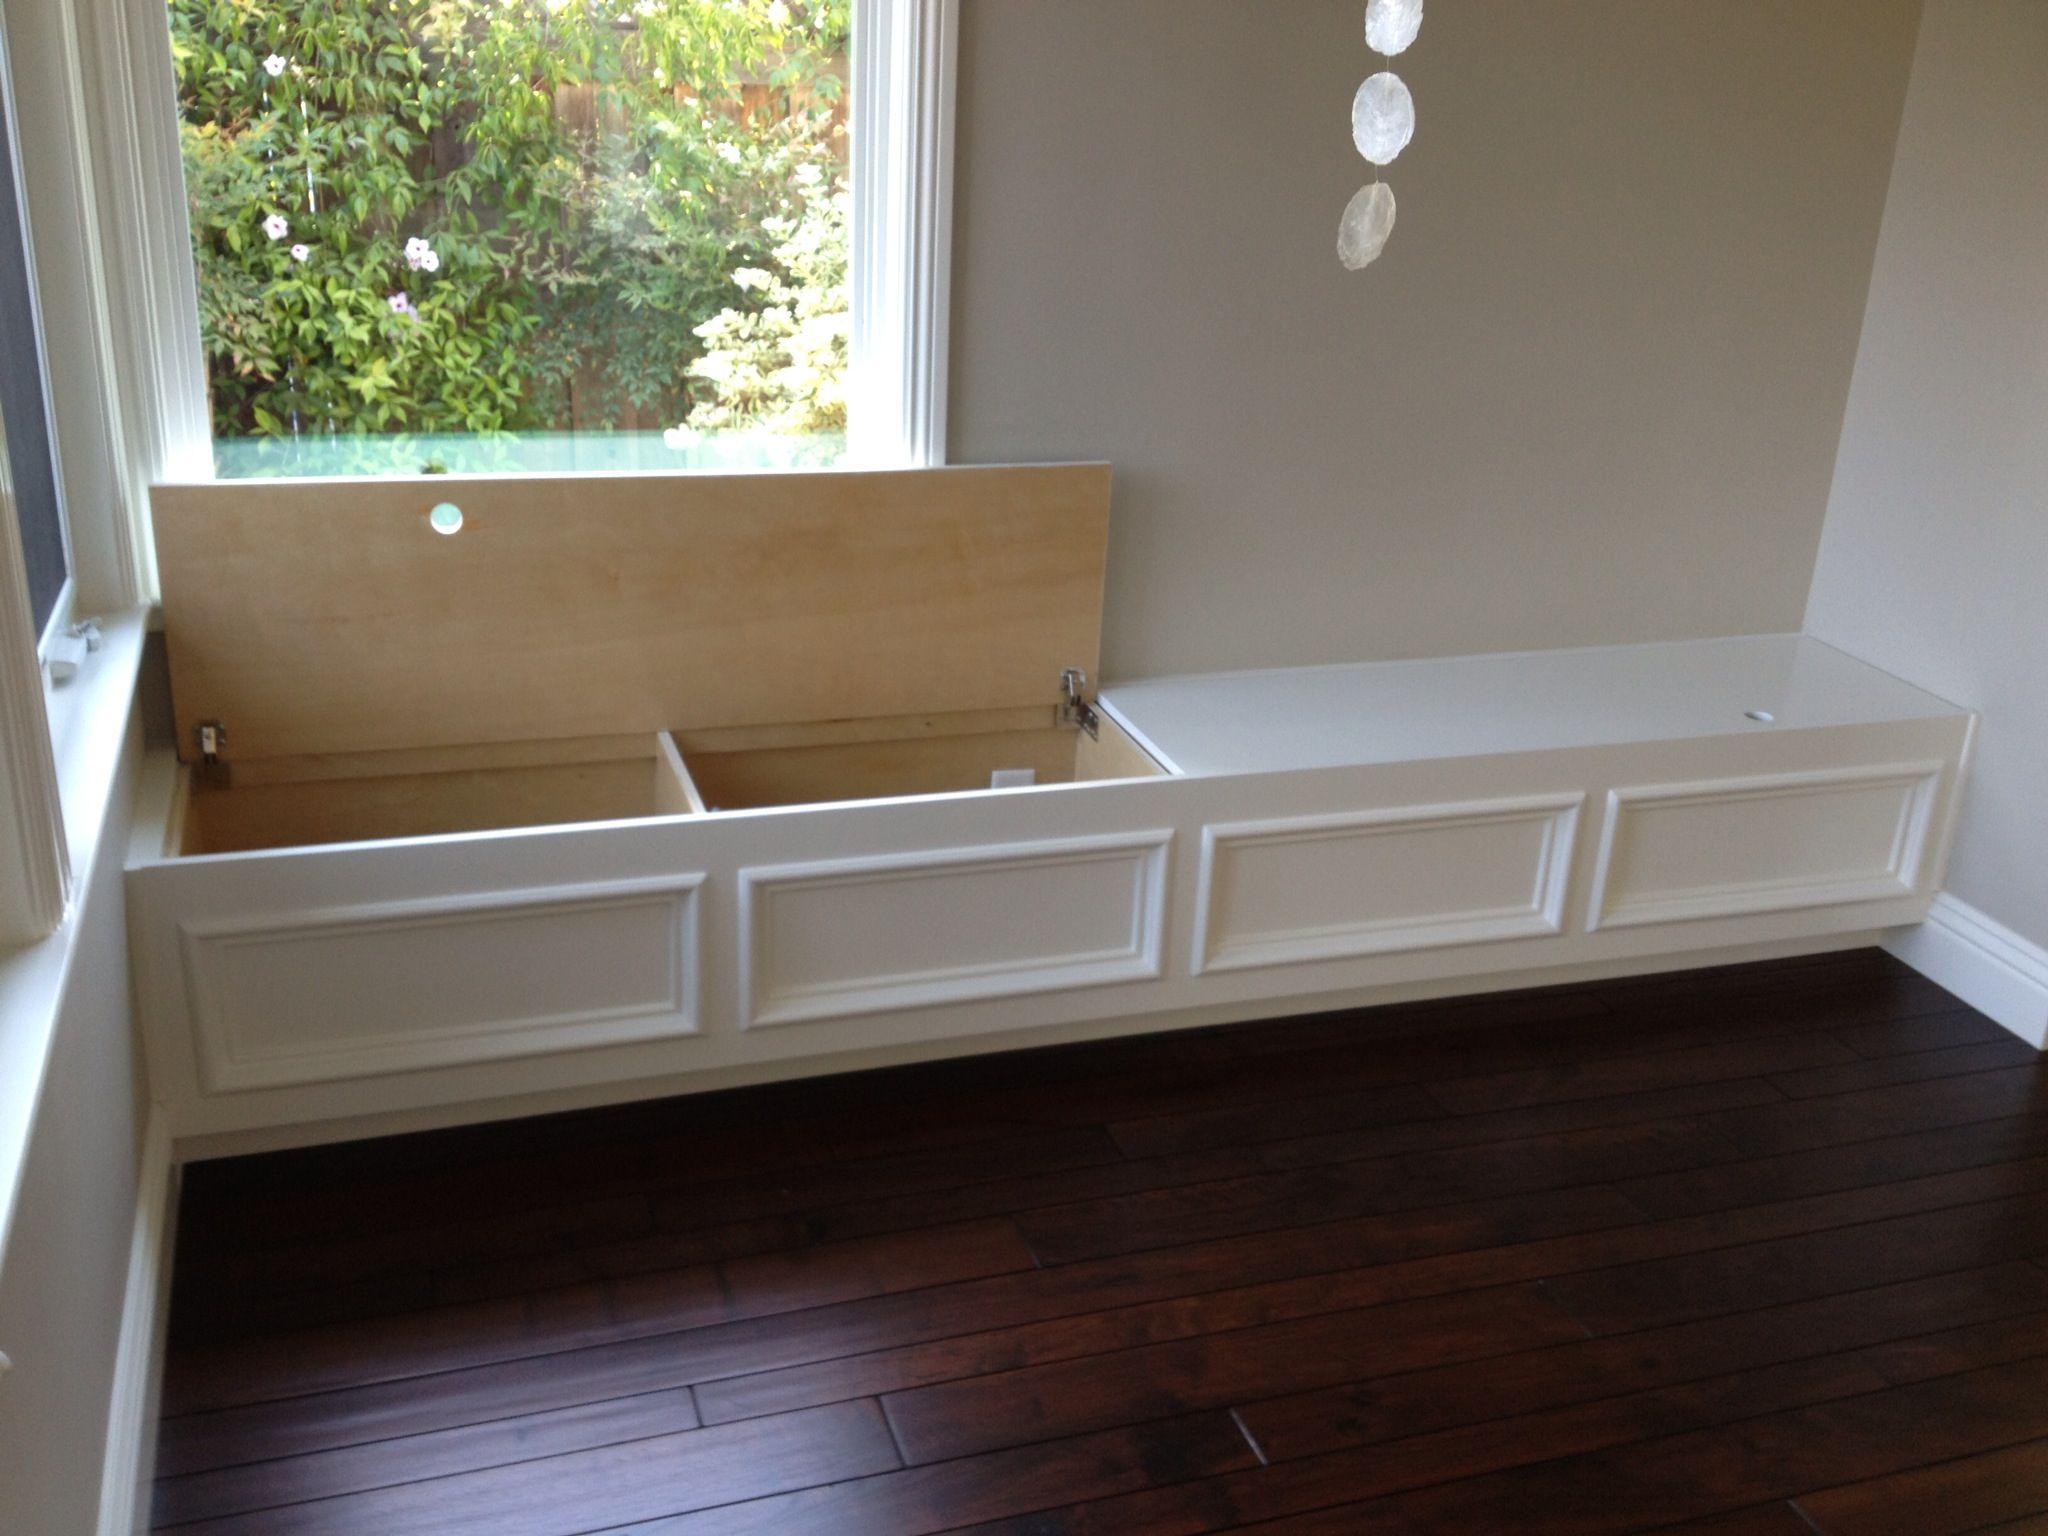 Built in bench seat with storage put along wall in family room for extra seating